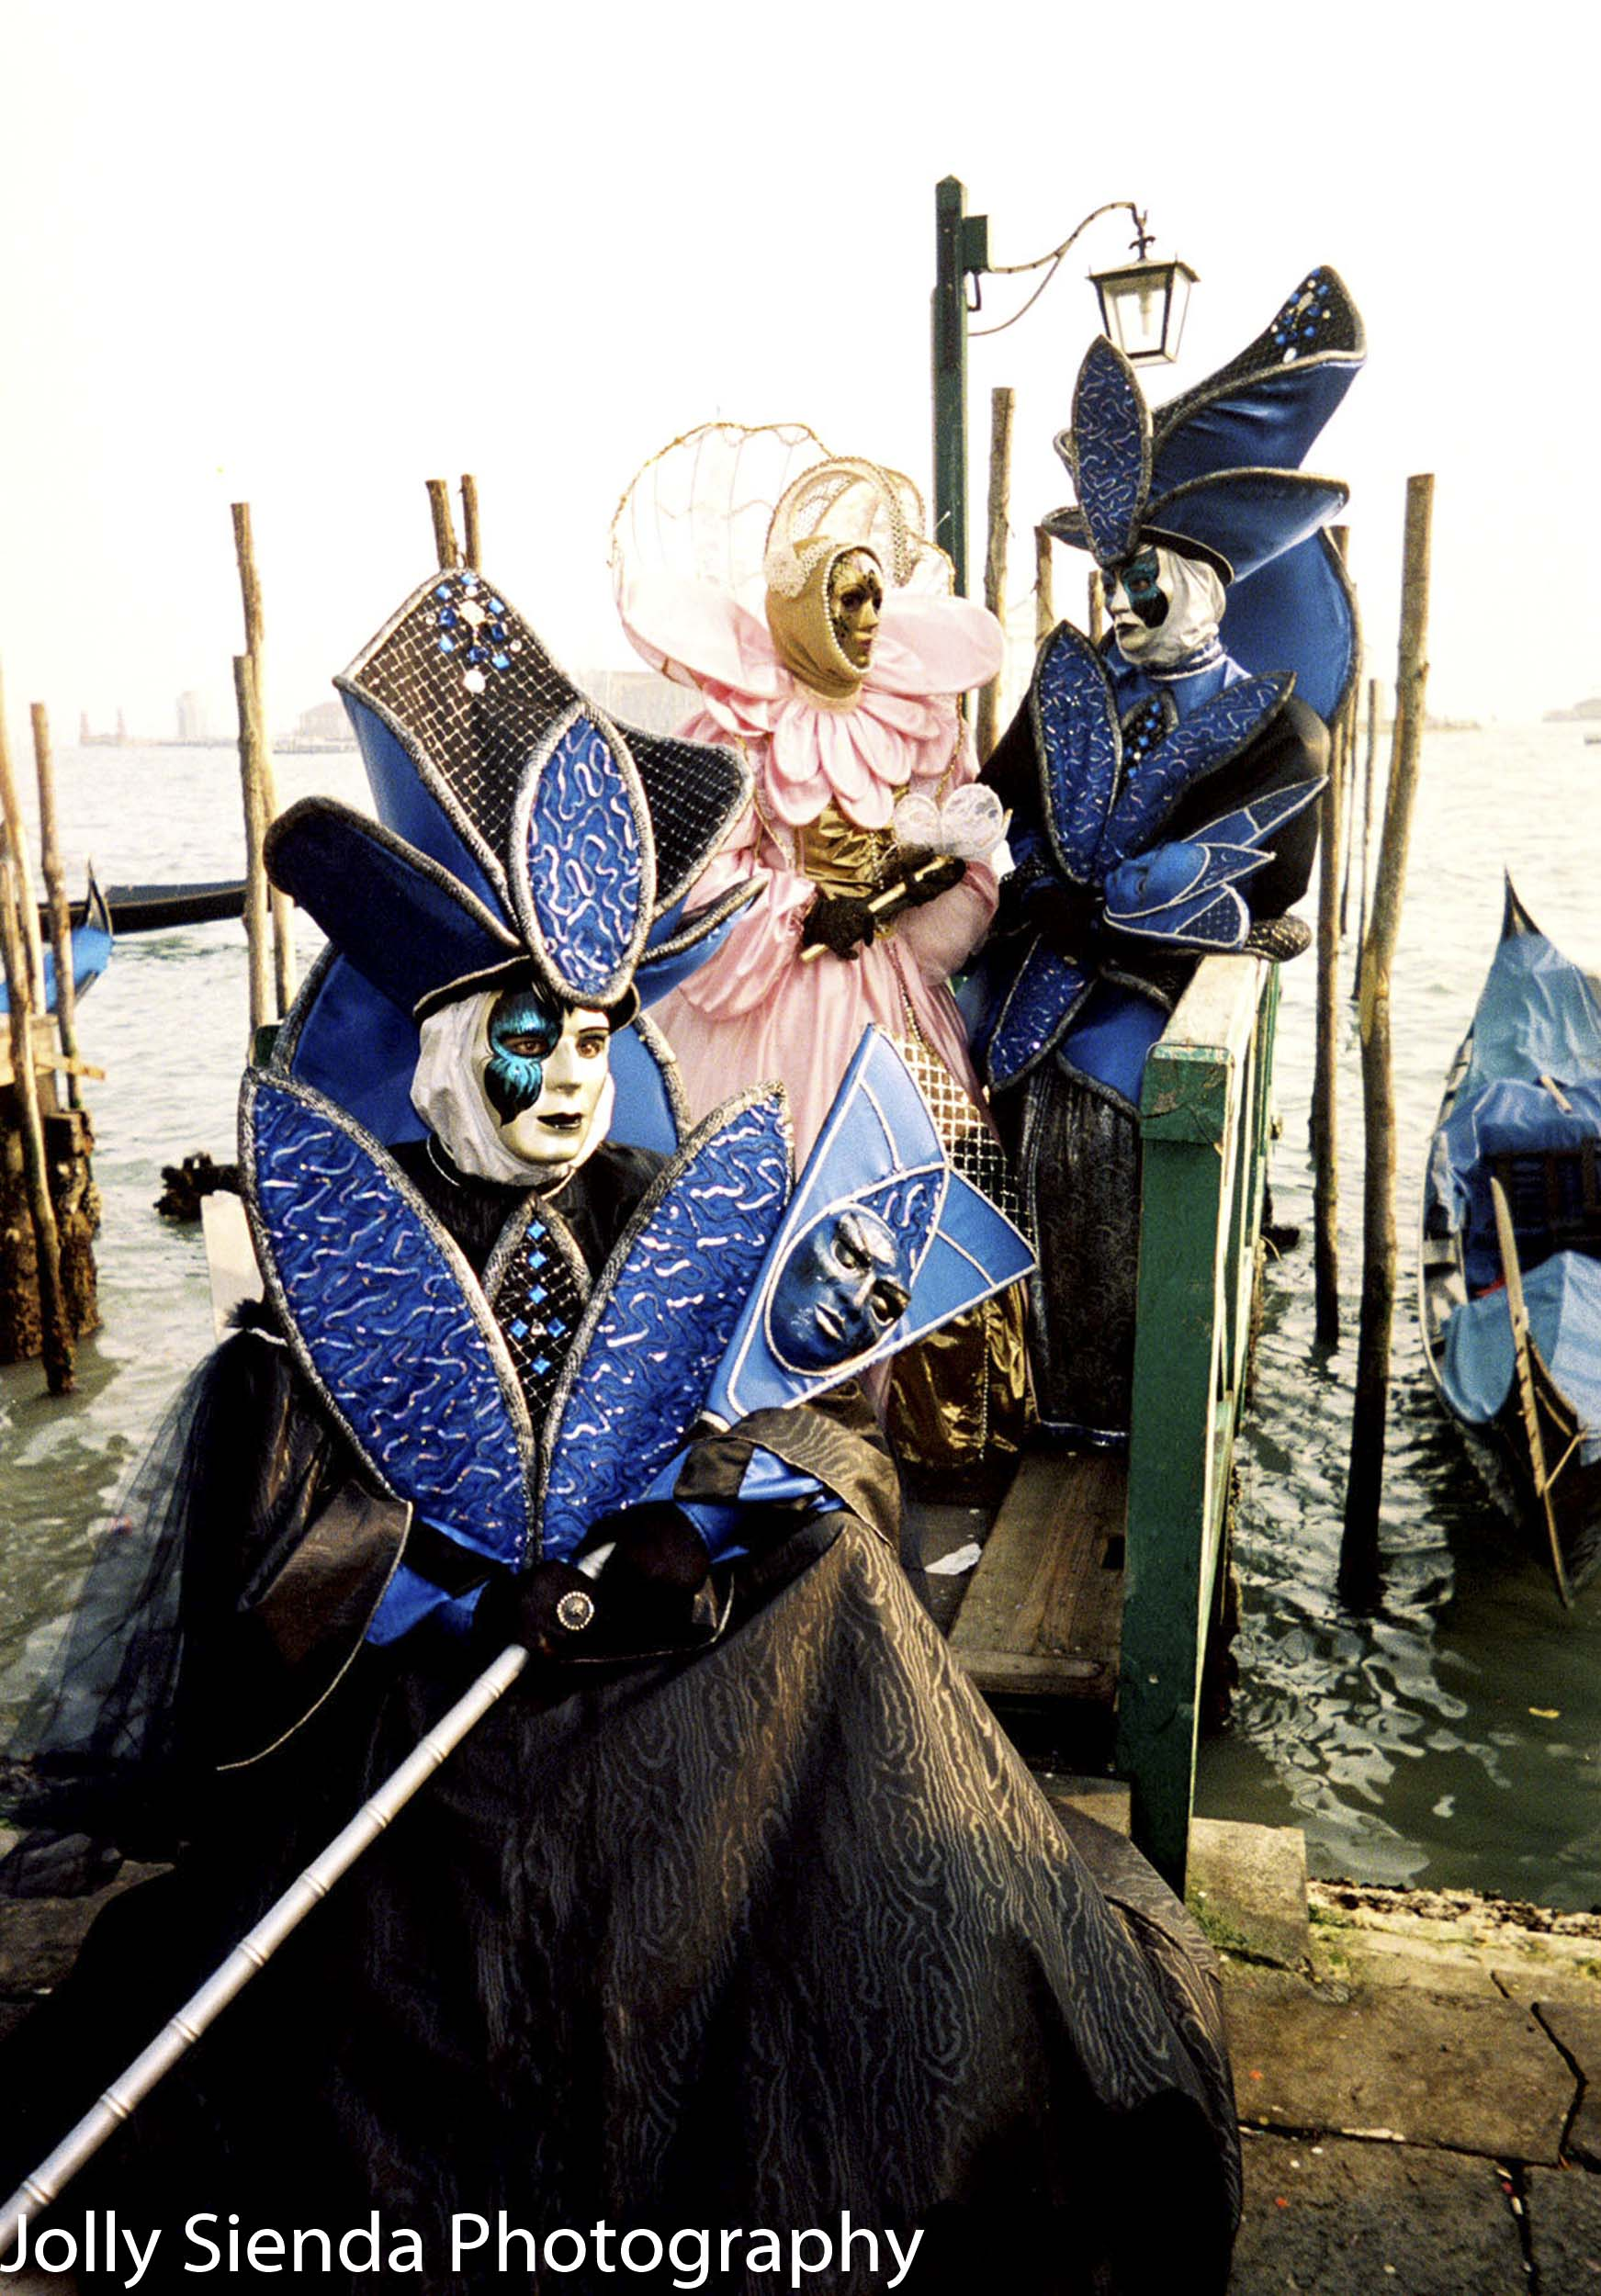 Venetian Carnival, costumes, and masks